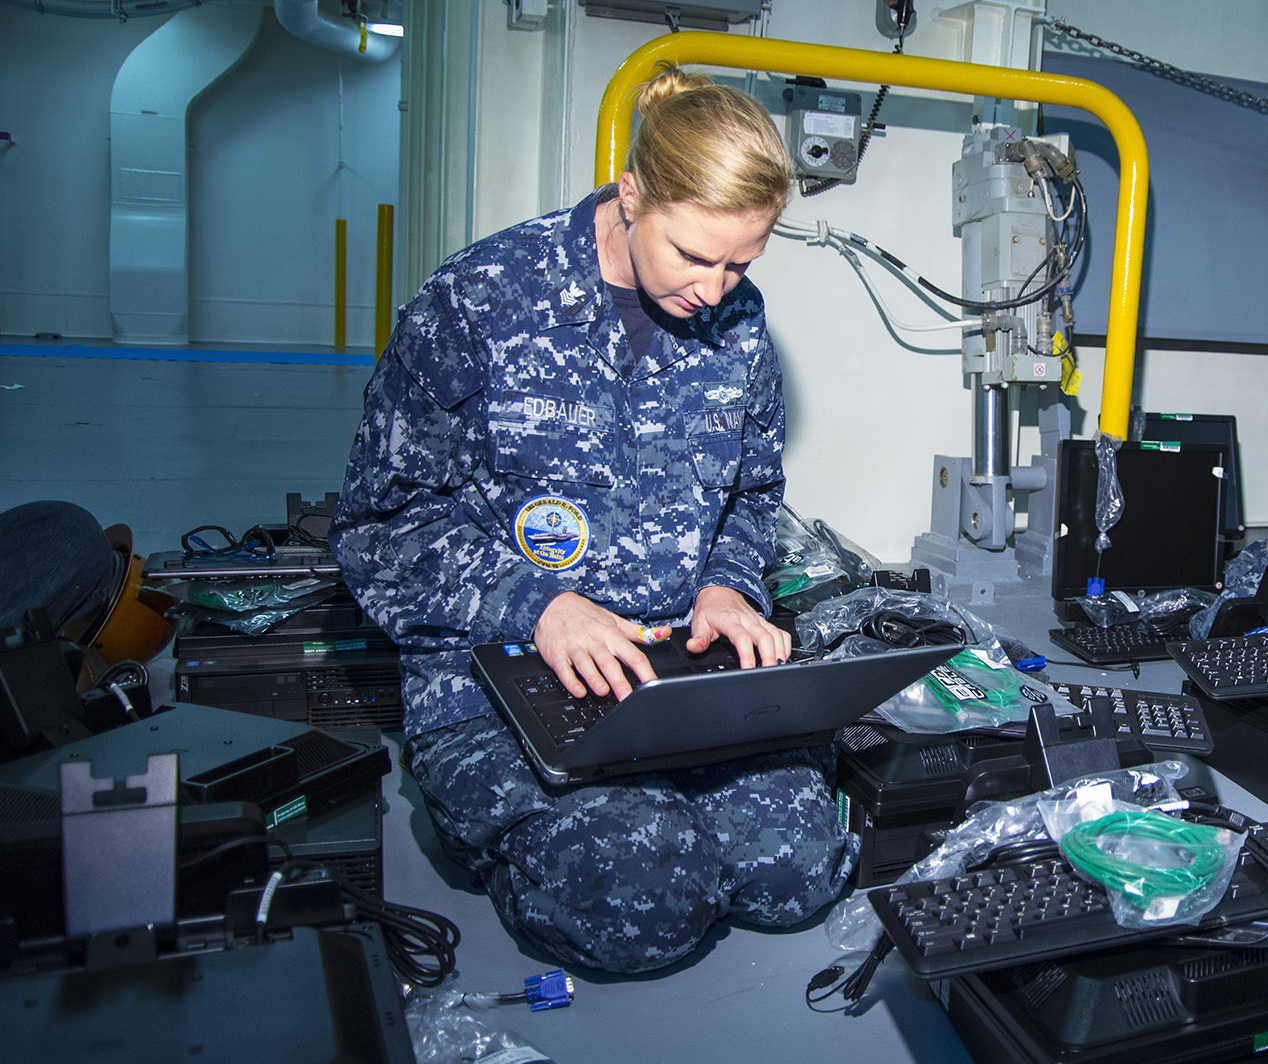 Information Systems Technician 1st Class Heather Edbauer assigned to Gerald R. Ford (CVN 78), track inventory while issuing new network computers for shipboard offices on July 14, 2015. US Navy Photo